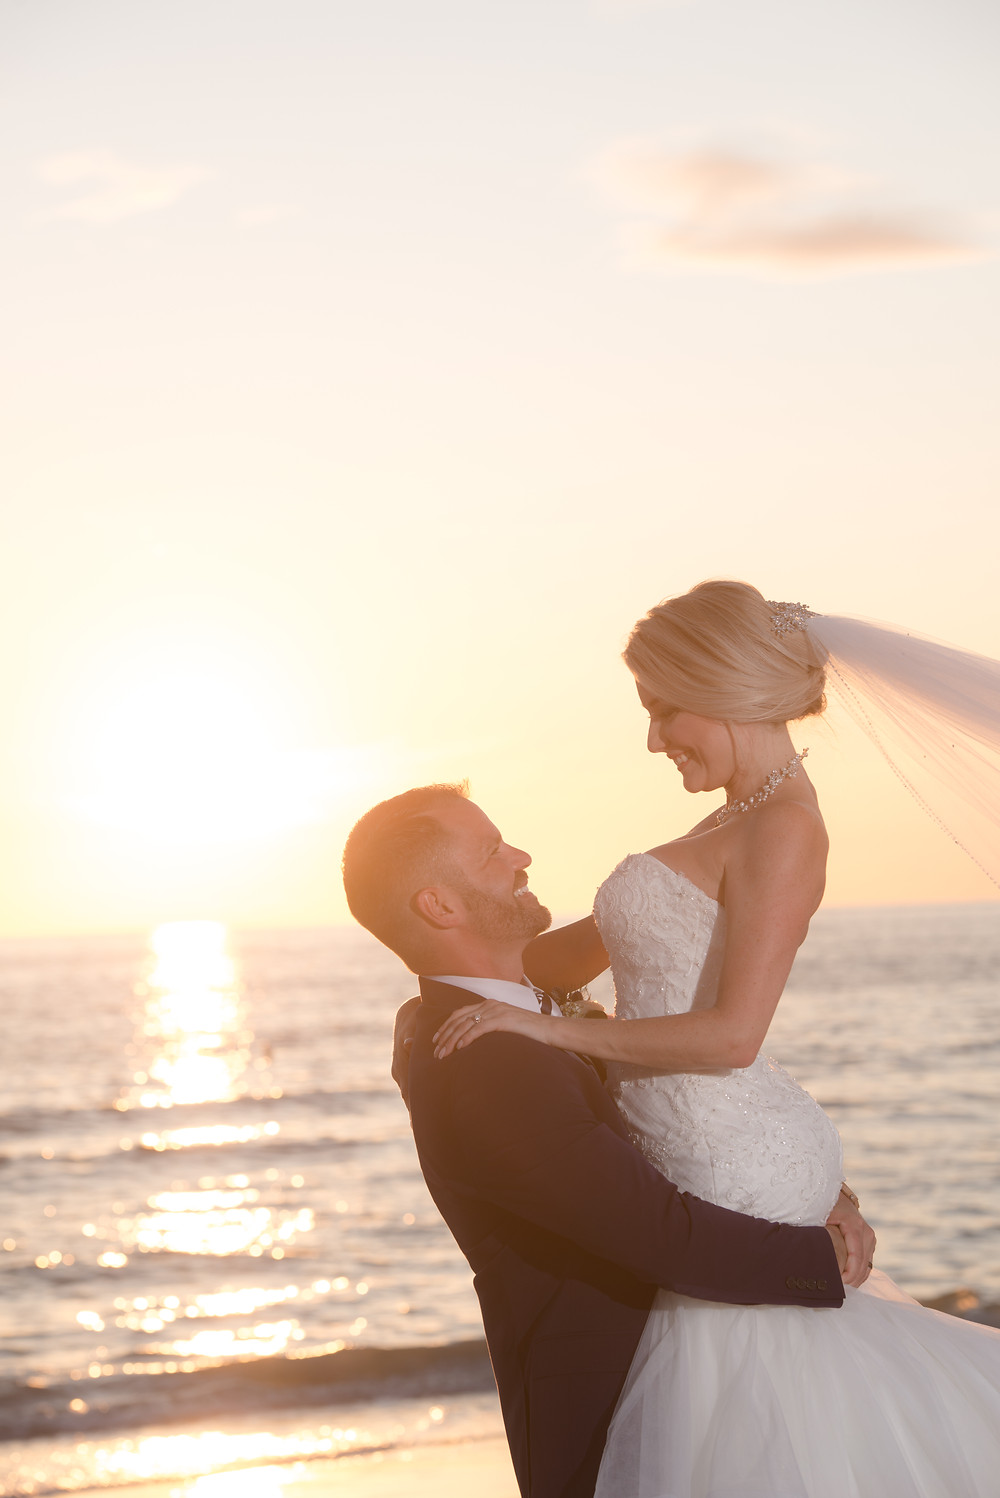 Groom lifts bride up during their sunset bridal portrait session on St Pete Beach in Florida